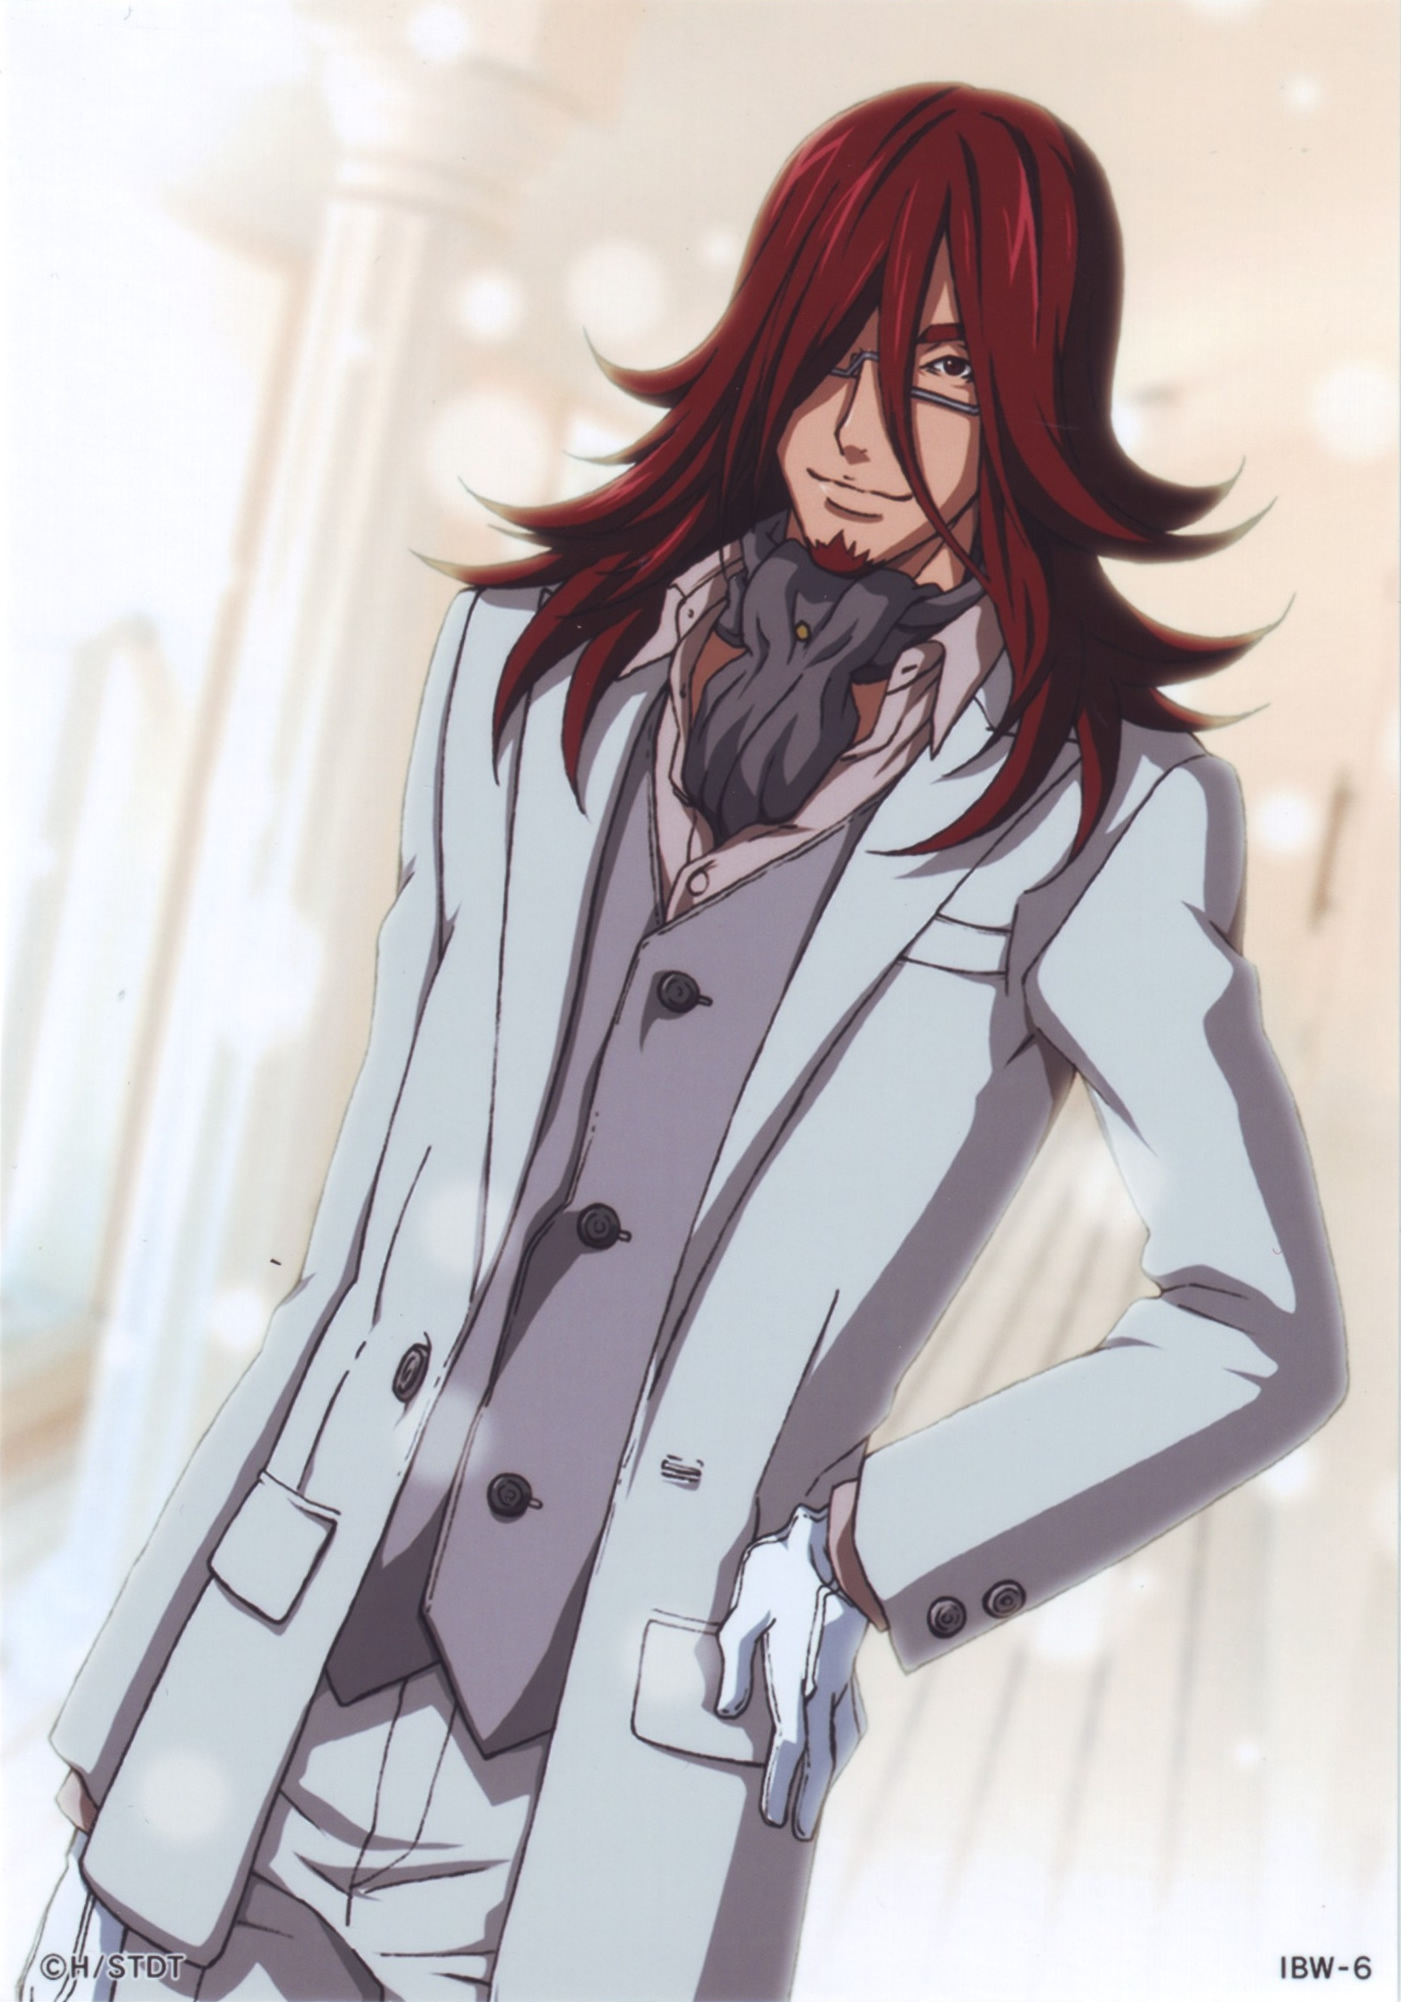 Cross Marian, Smile, Gloves, Male, Red Hair, Solo, Suit, D.Gray-man